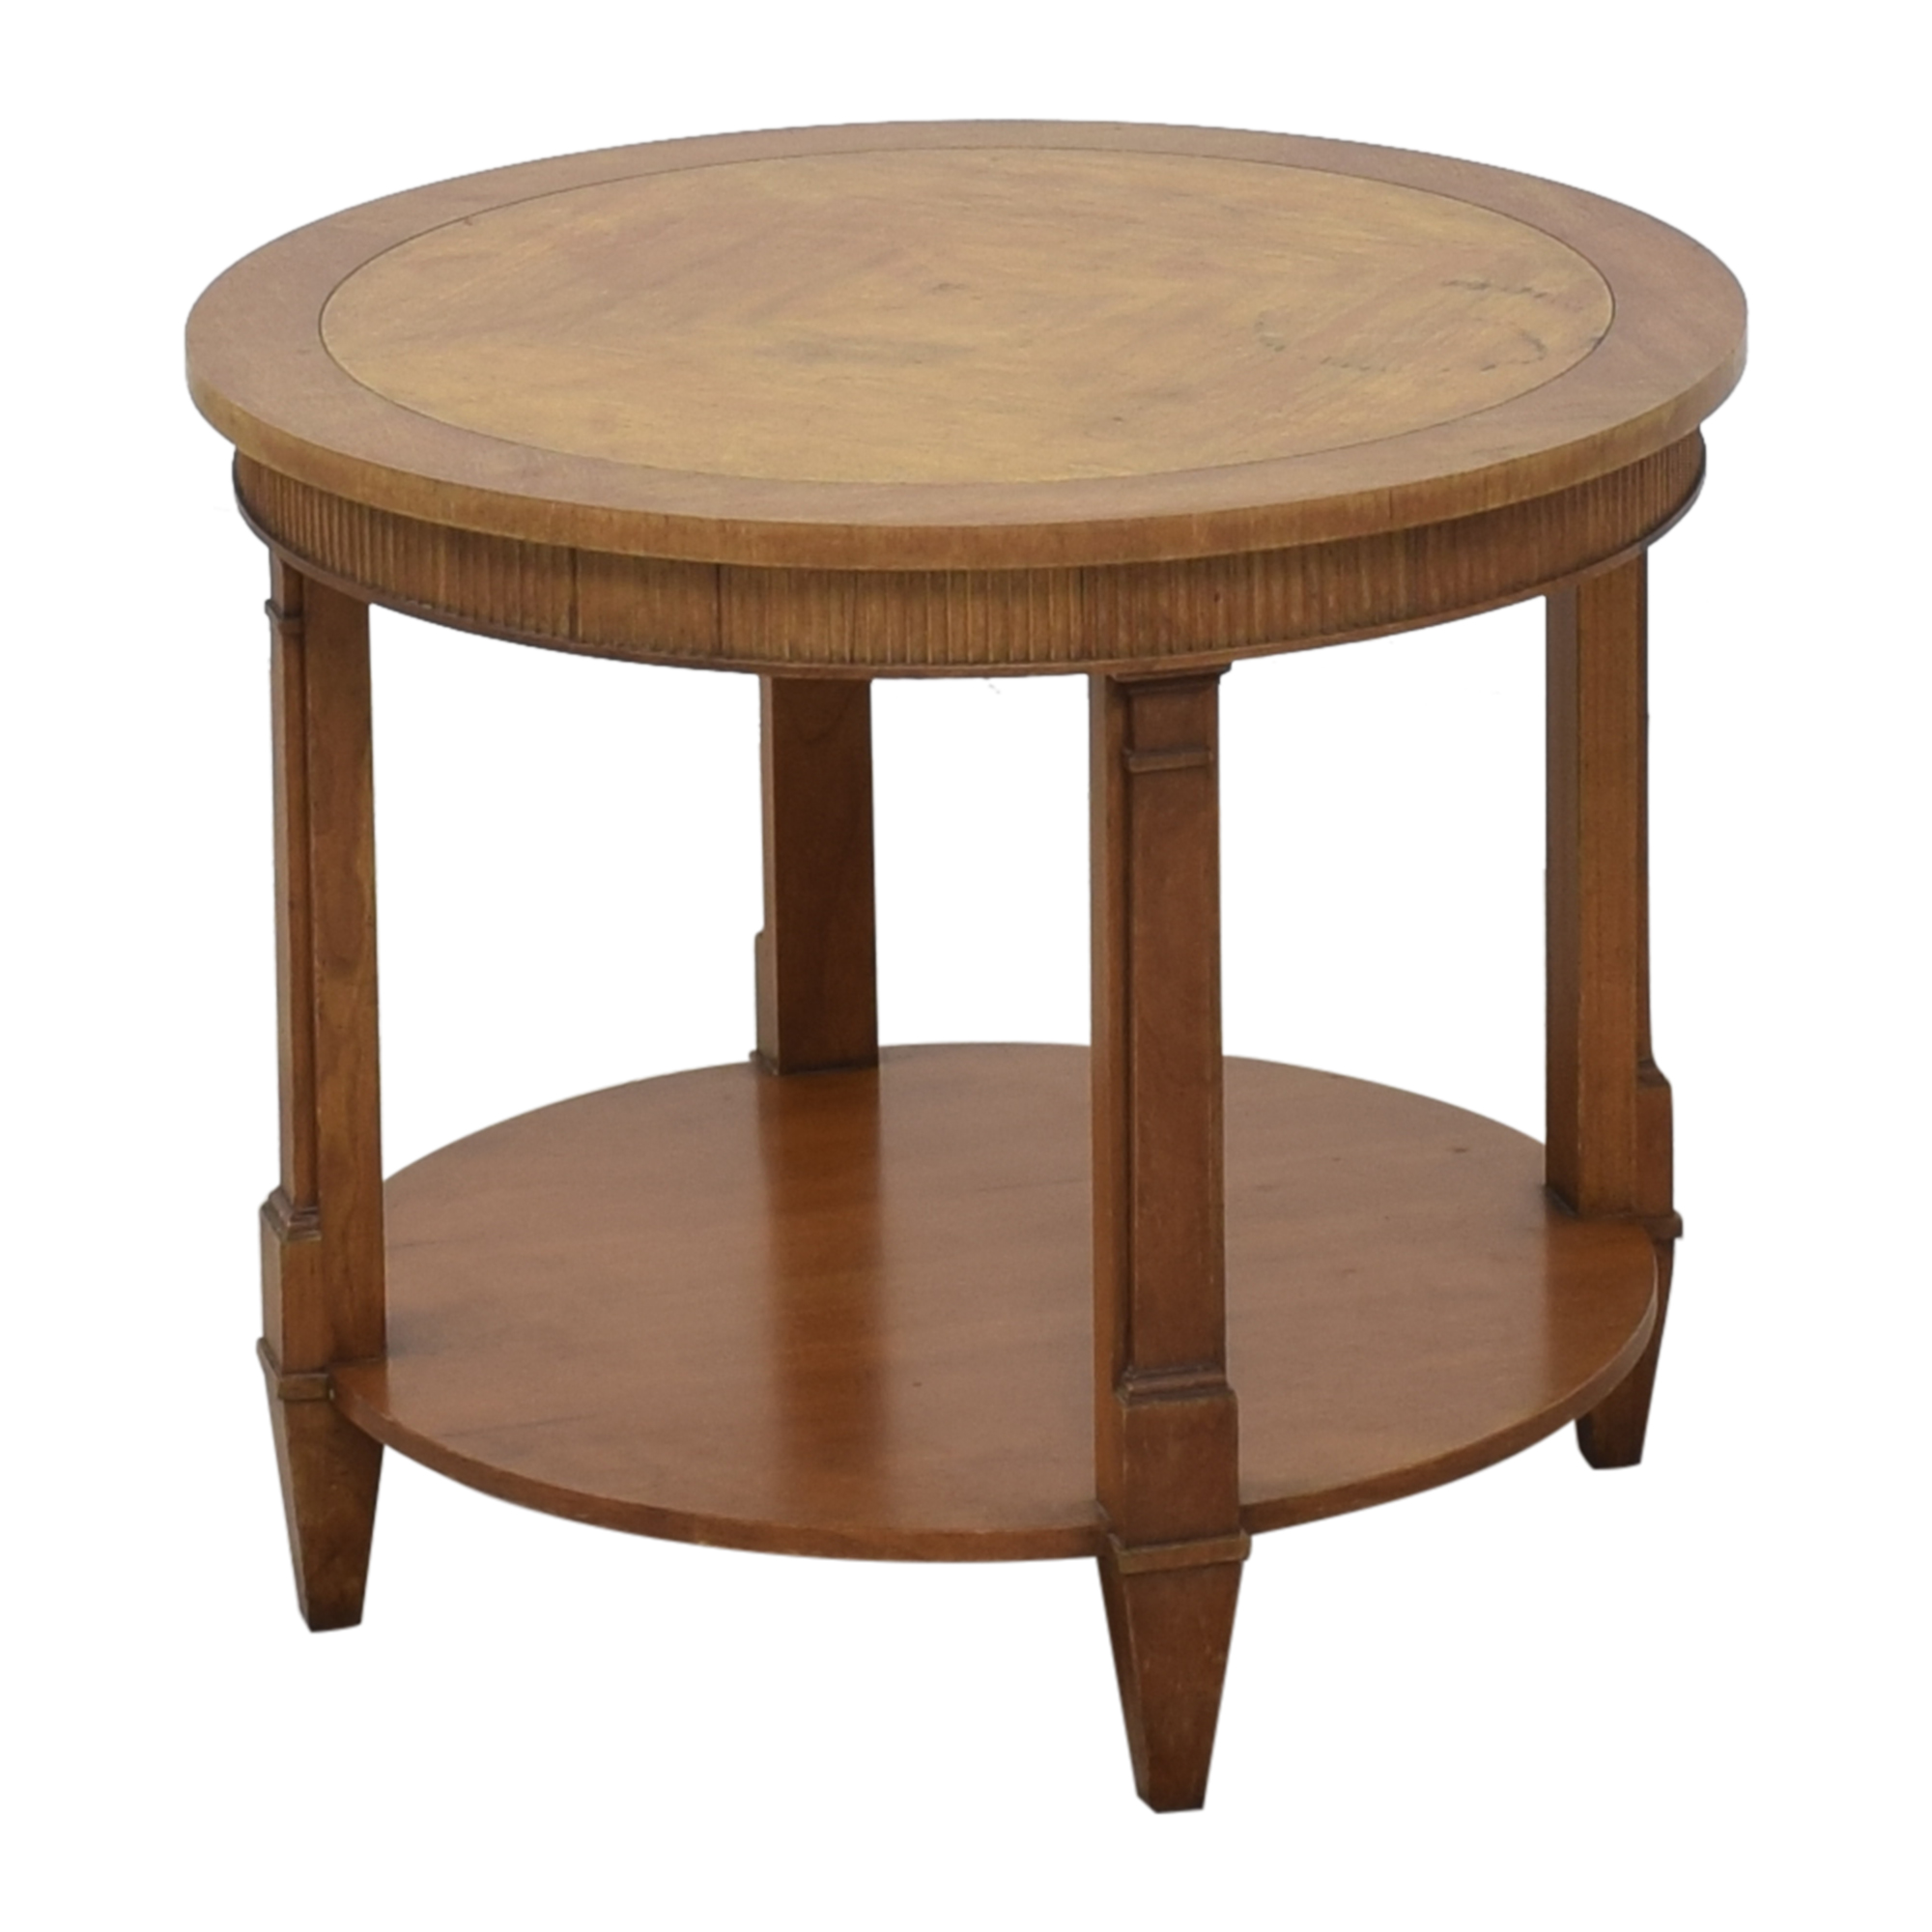 Baker Furniture Round Accent Table / Tables